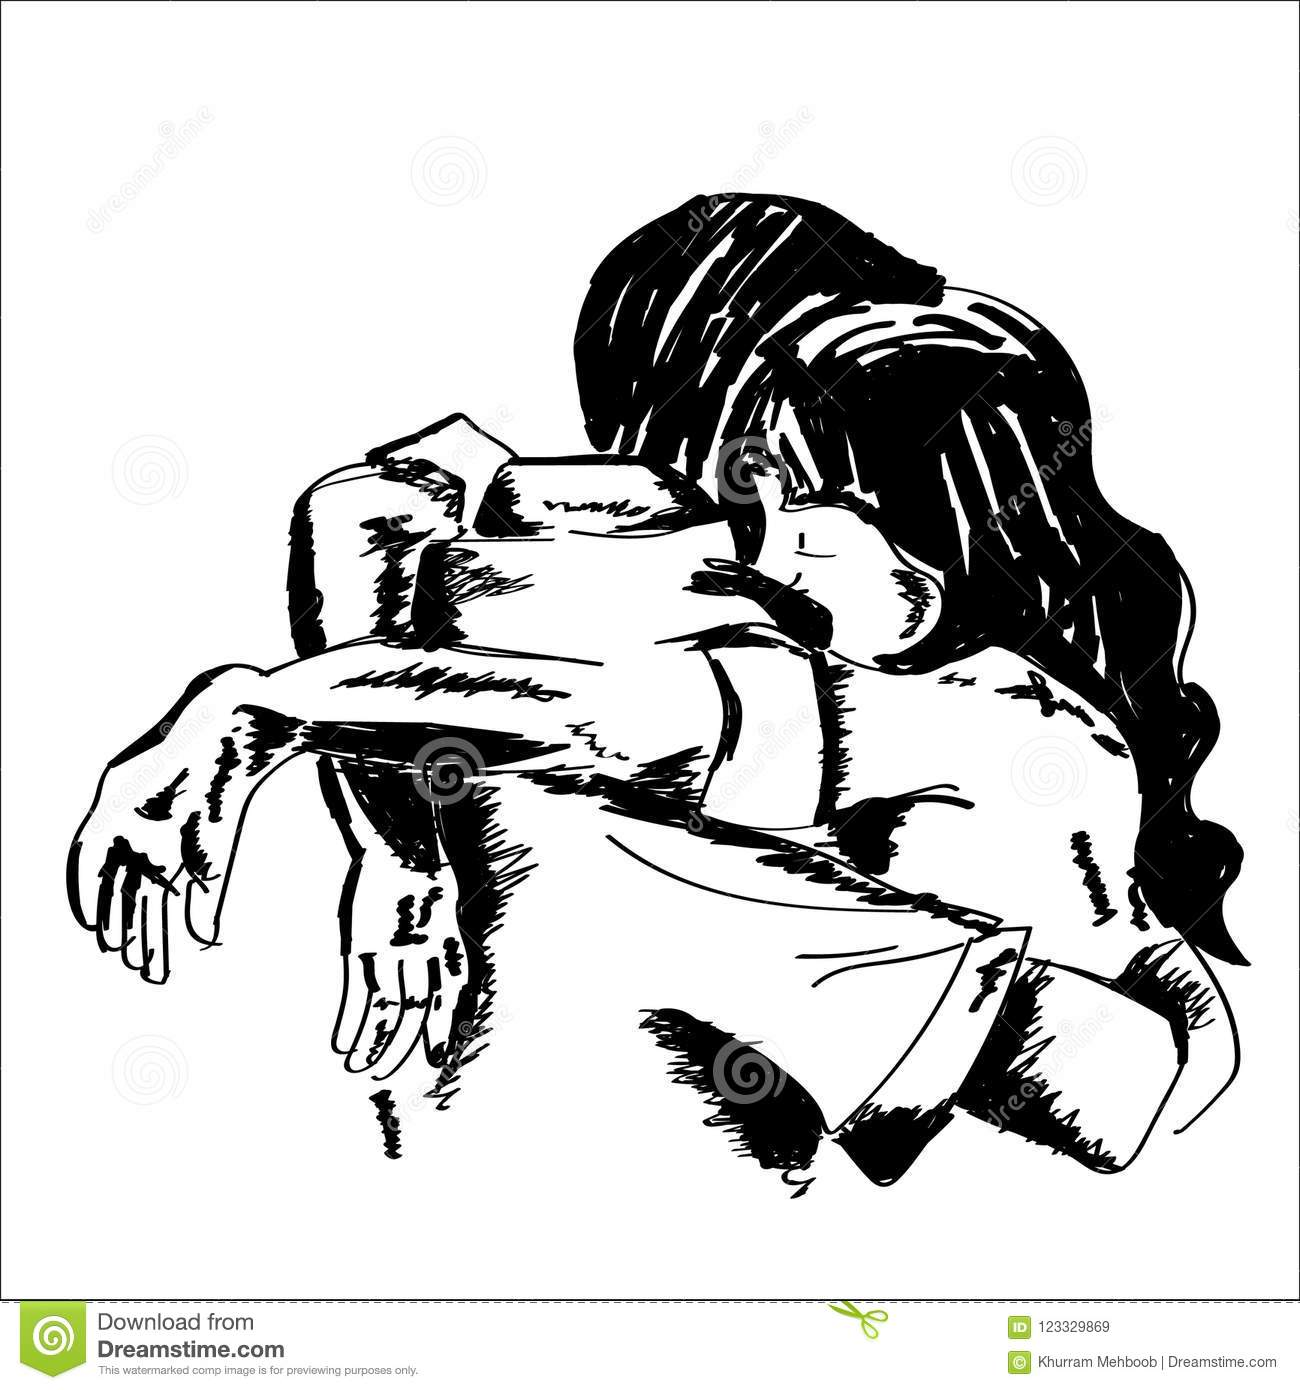 Digitally hand drawn sketch of a young and romantic couple hugging and consoling each othern